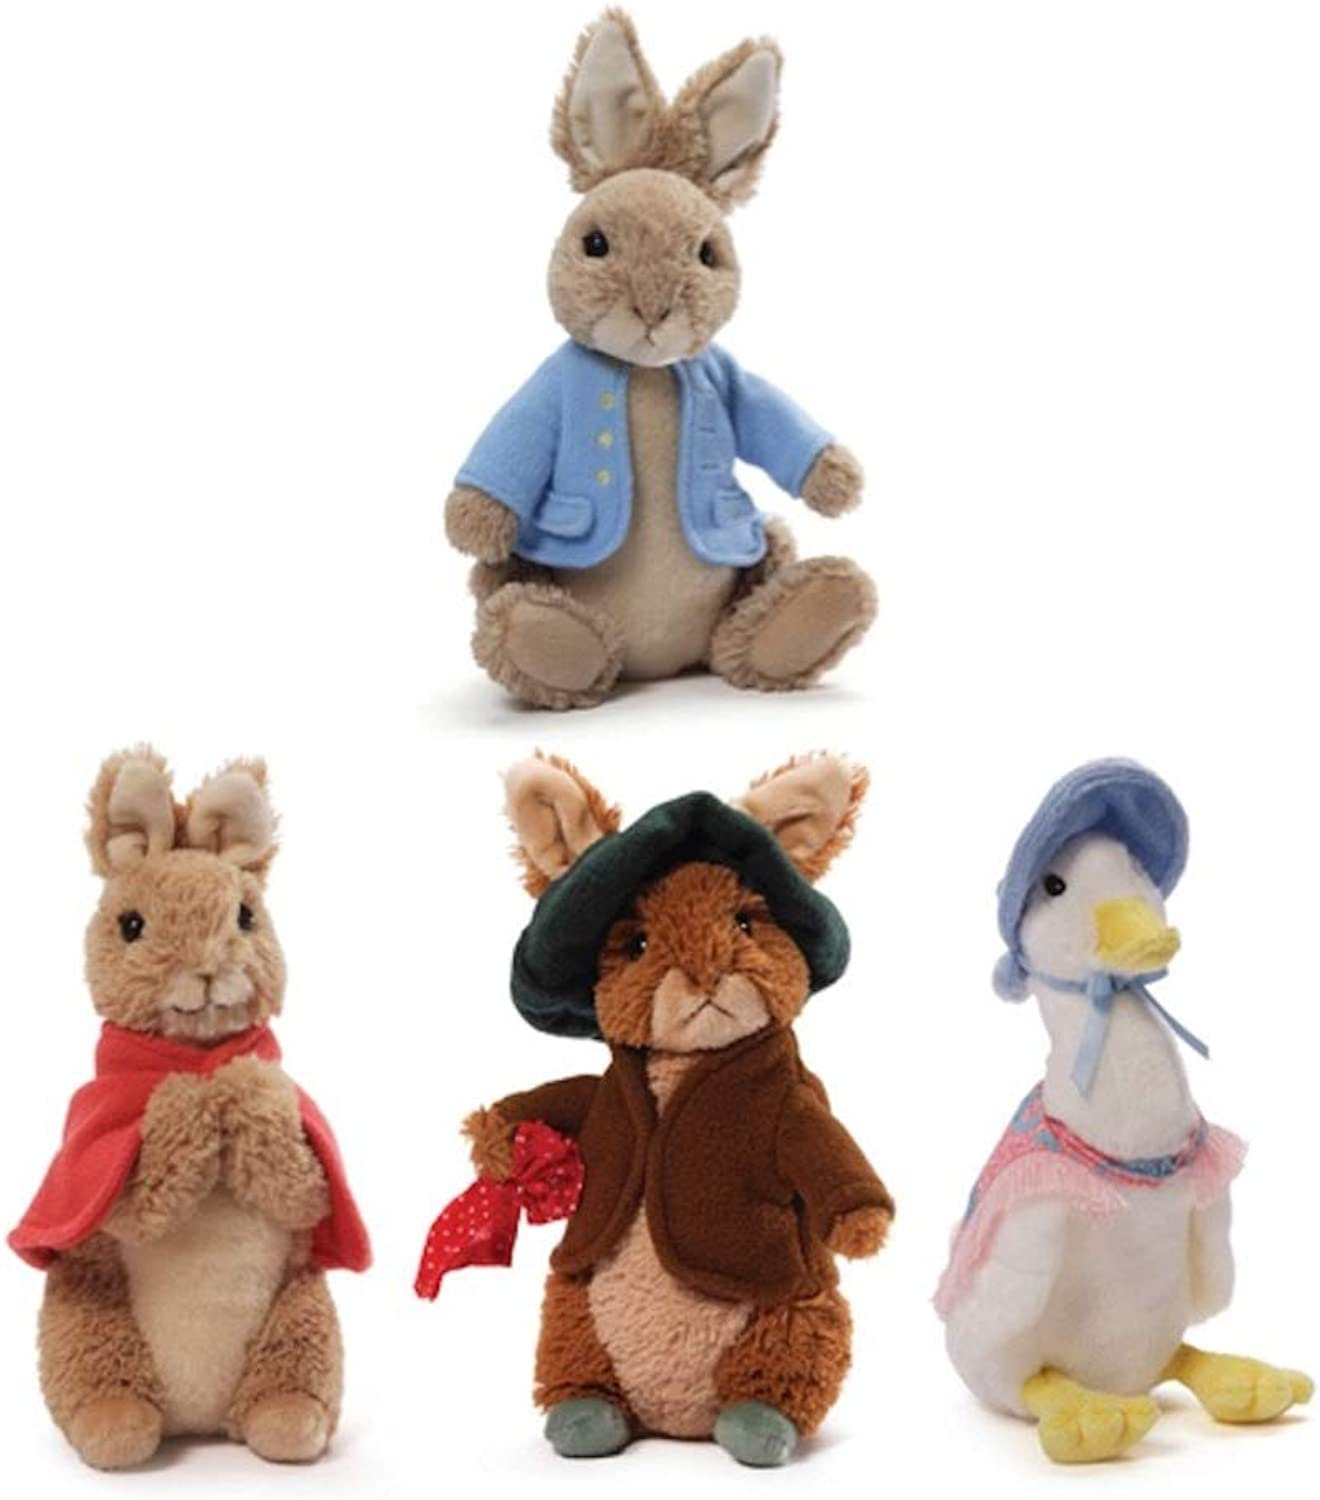 Gund Classic Beatrix Potter Plush Collection  Peter Rabbit, Flopsy Bunny, Benjamin Bunny and Jemima Puddle-Duck by GUND